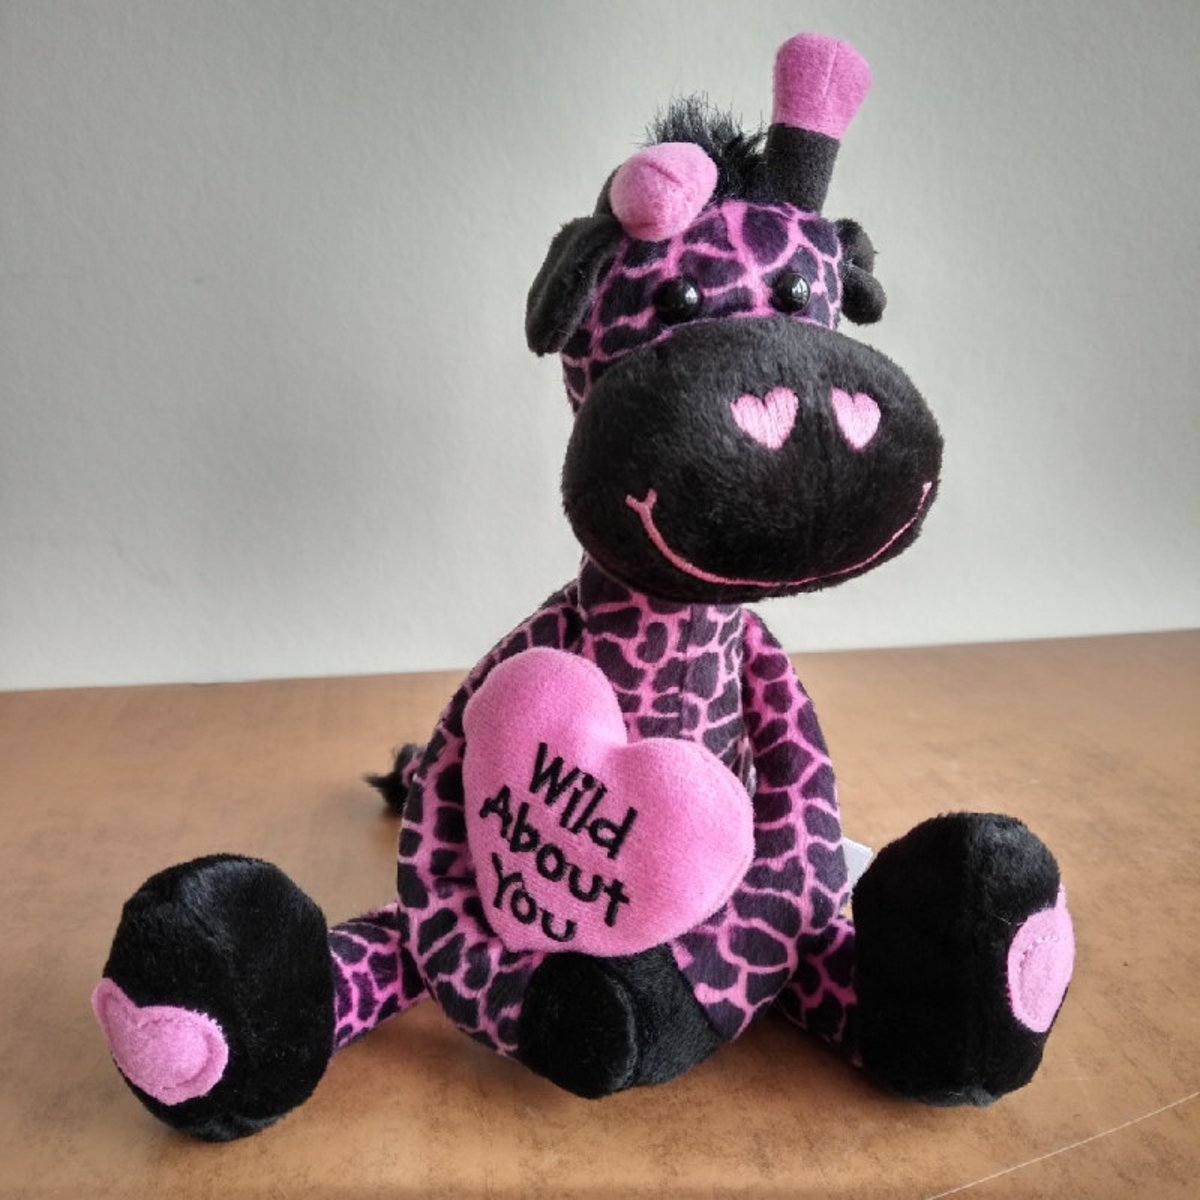 GRAPPIG GIRAFJE - WILD ABOUT YOU - 17CM